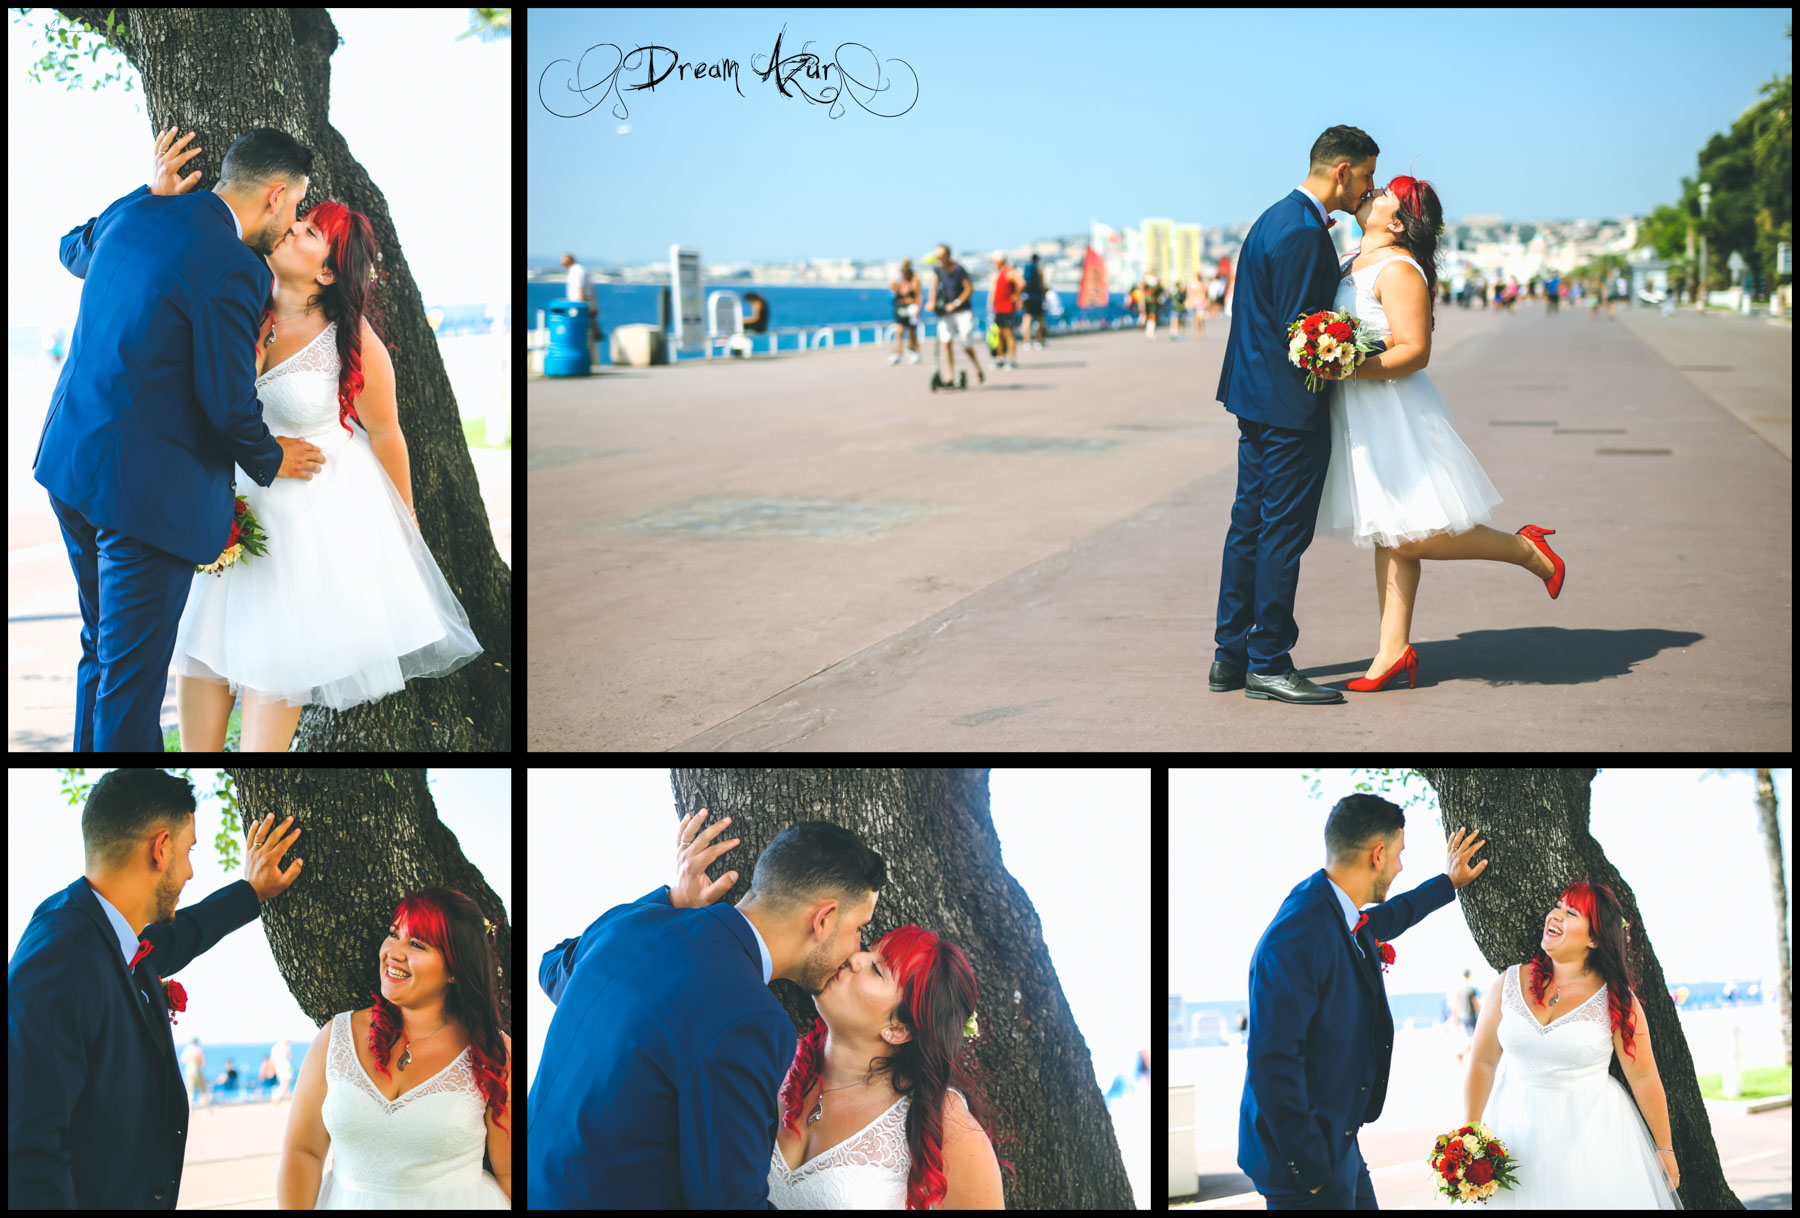 190824COMPO-Mariage-Cindy-et-Anthony-22